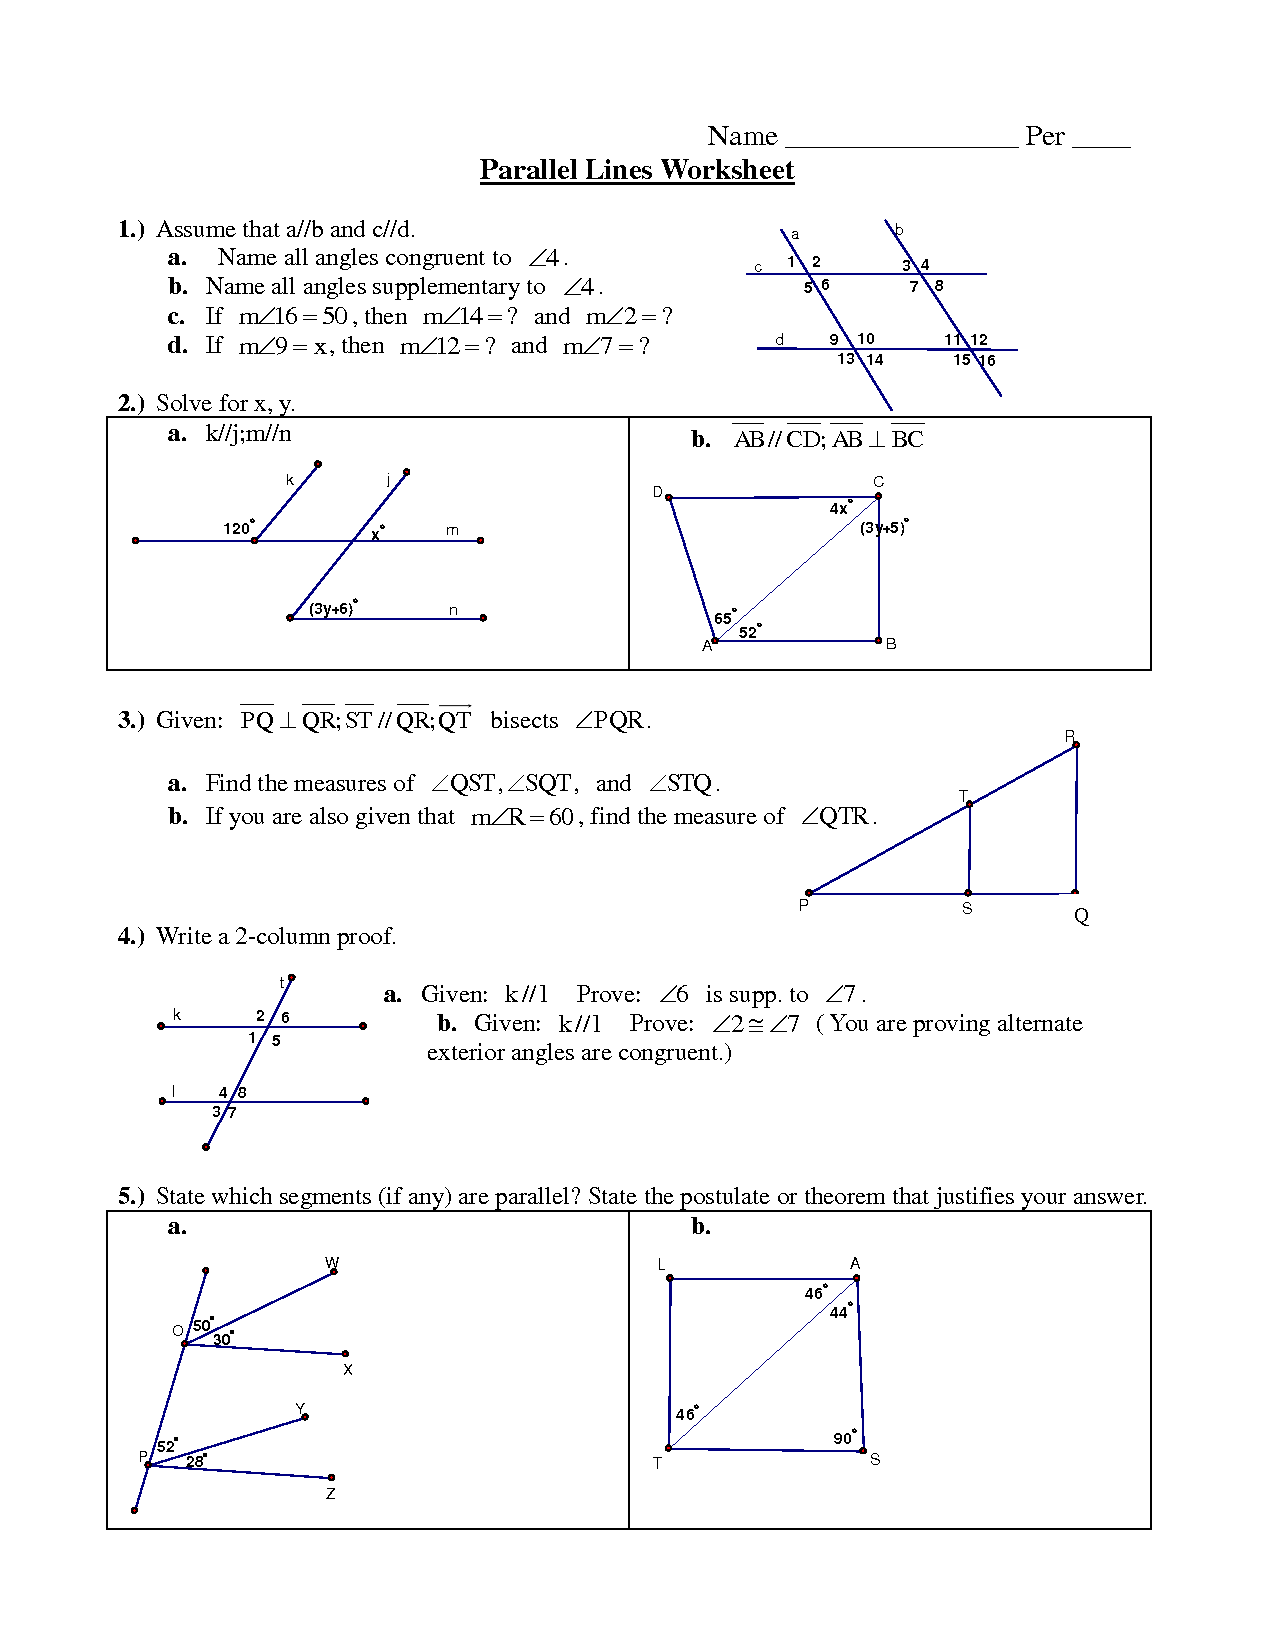 12 Best Images Of Shape Perpendicular Lines Worksheet